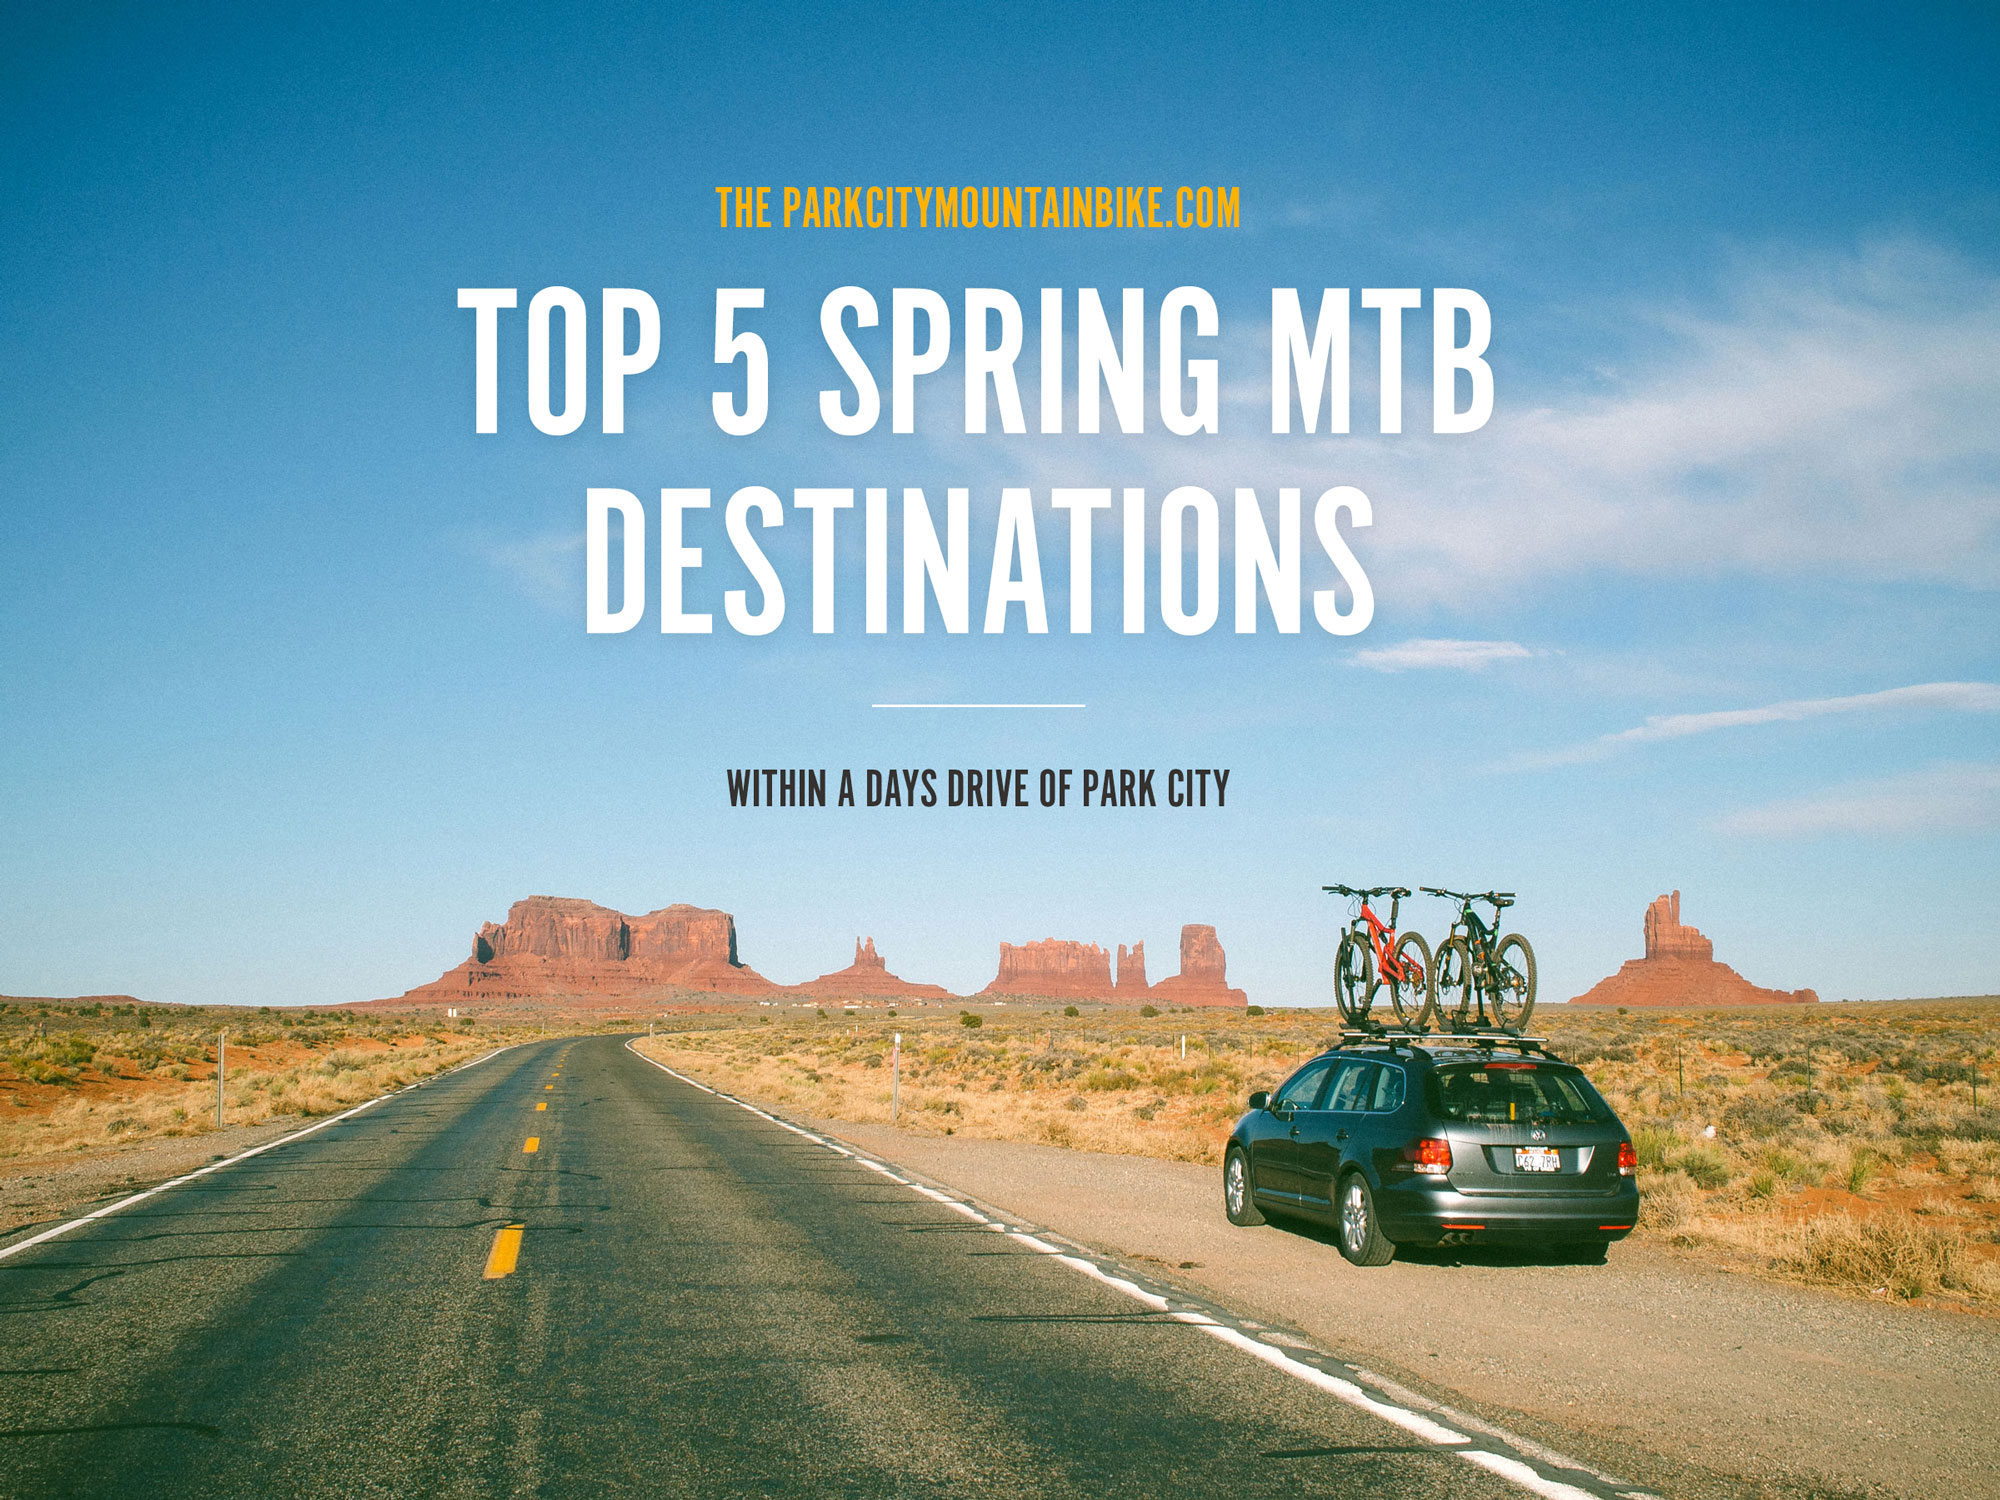 Top Spring MTB Destinations